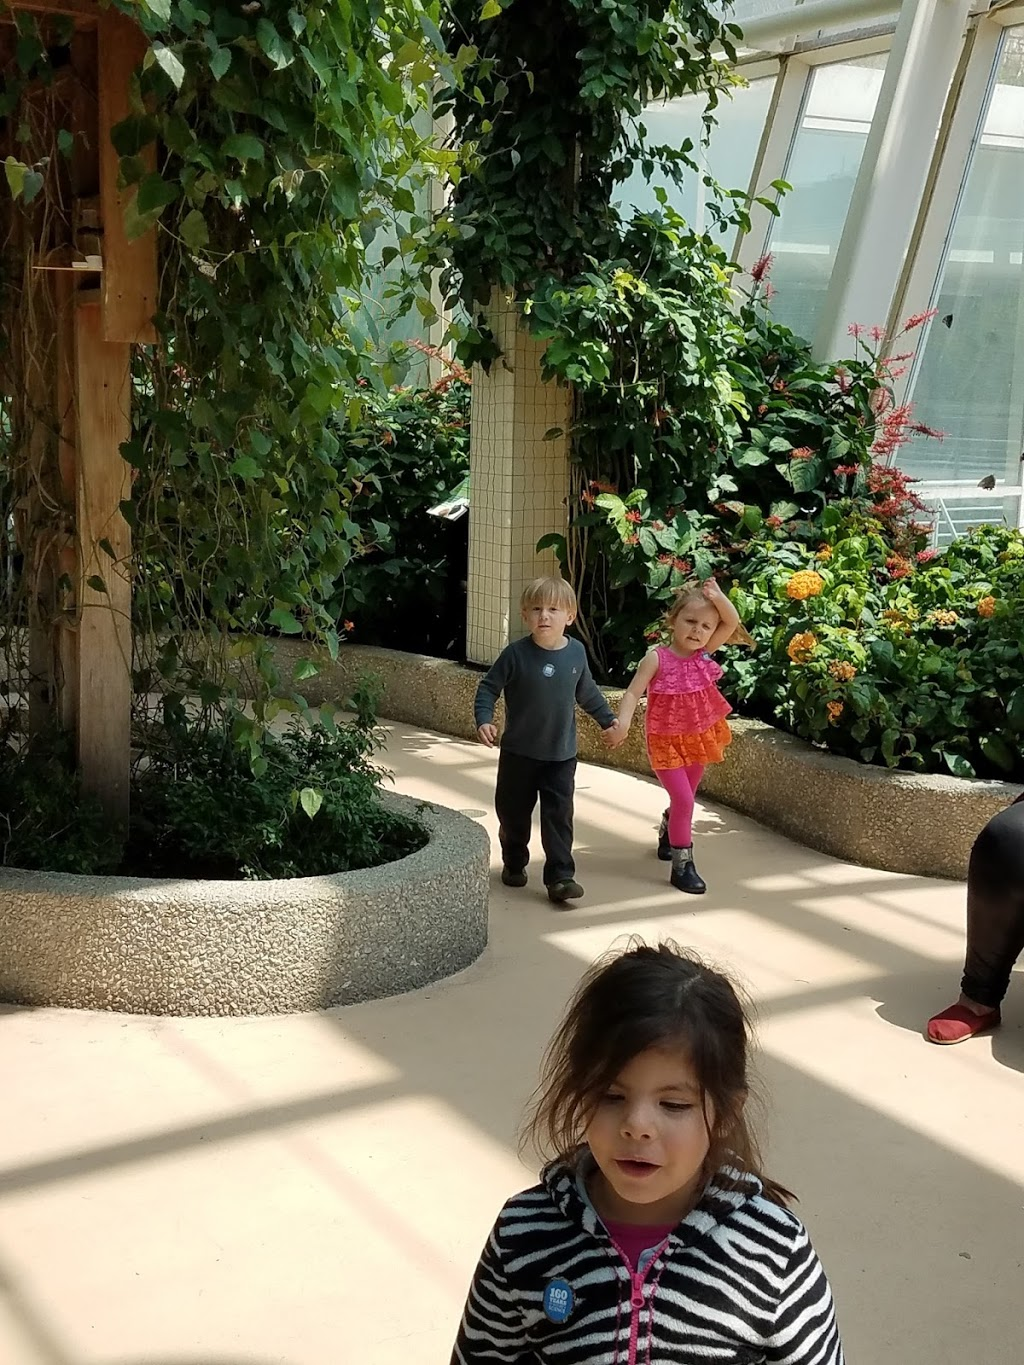 Aunt Kays inhome daycare 24/7 - point of interest  | Photo 2 of 2 | Address: 3442 N Albany Ave, Chicago, IL 60618, USA | Phone: (773) 443-1258